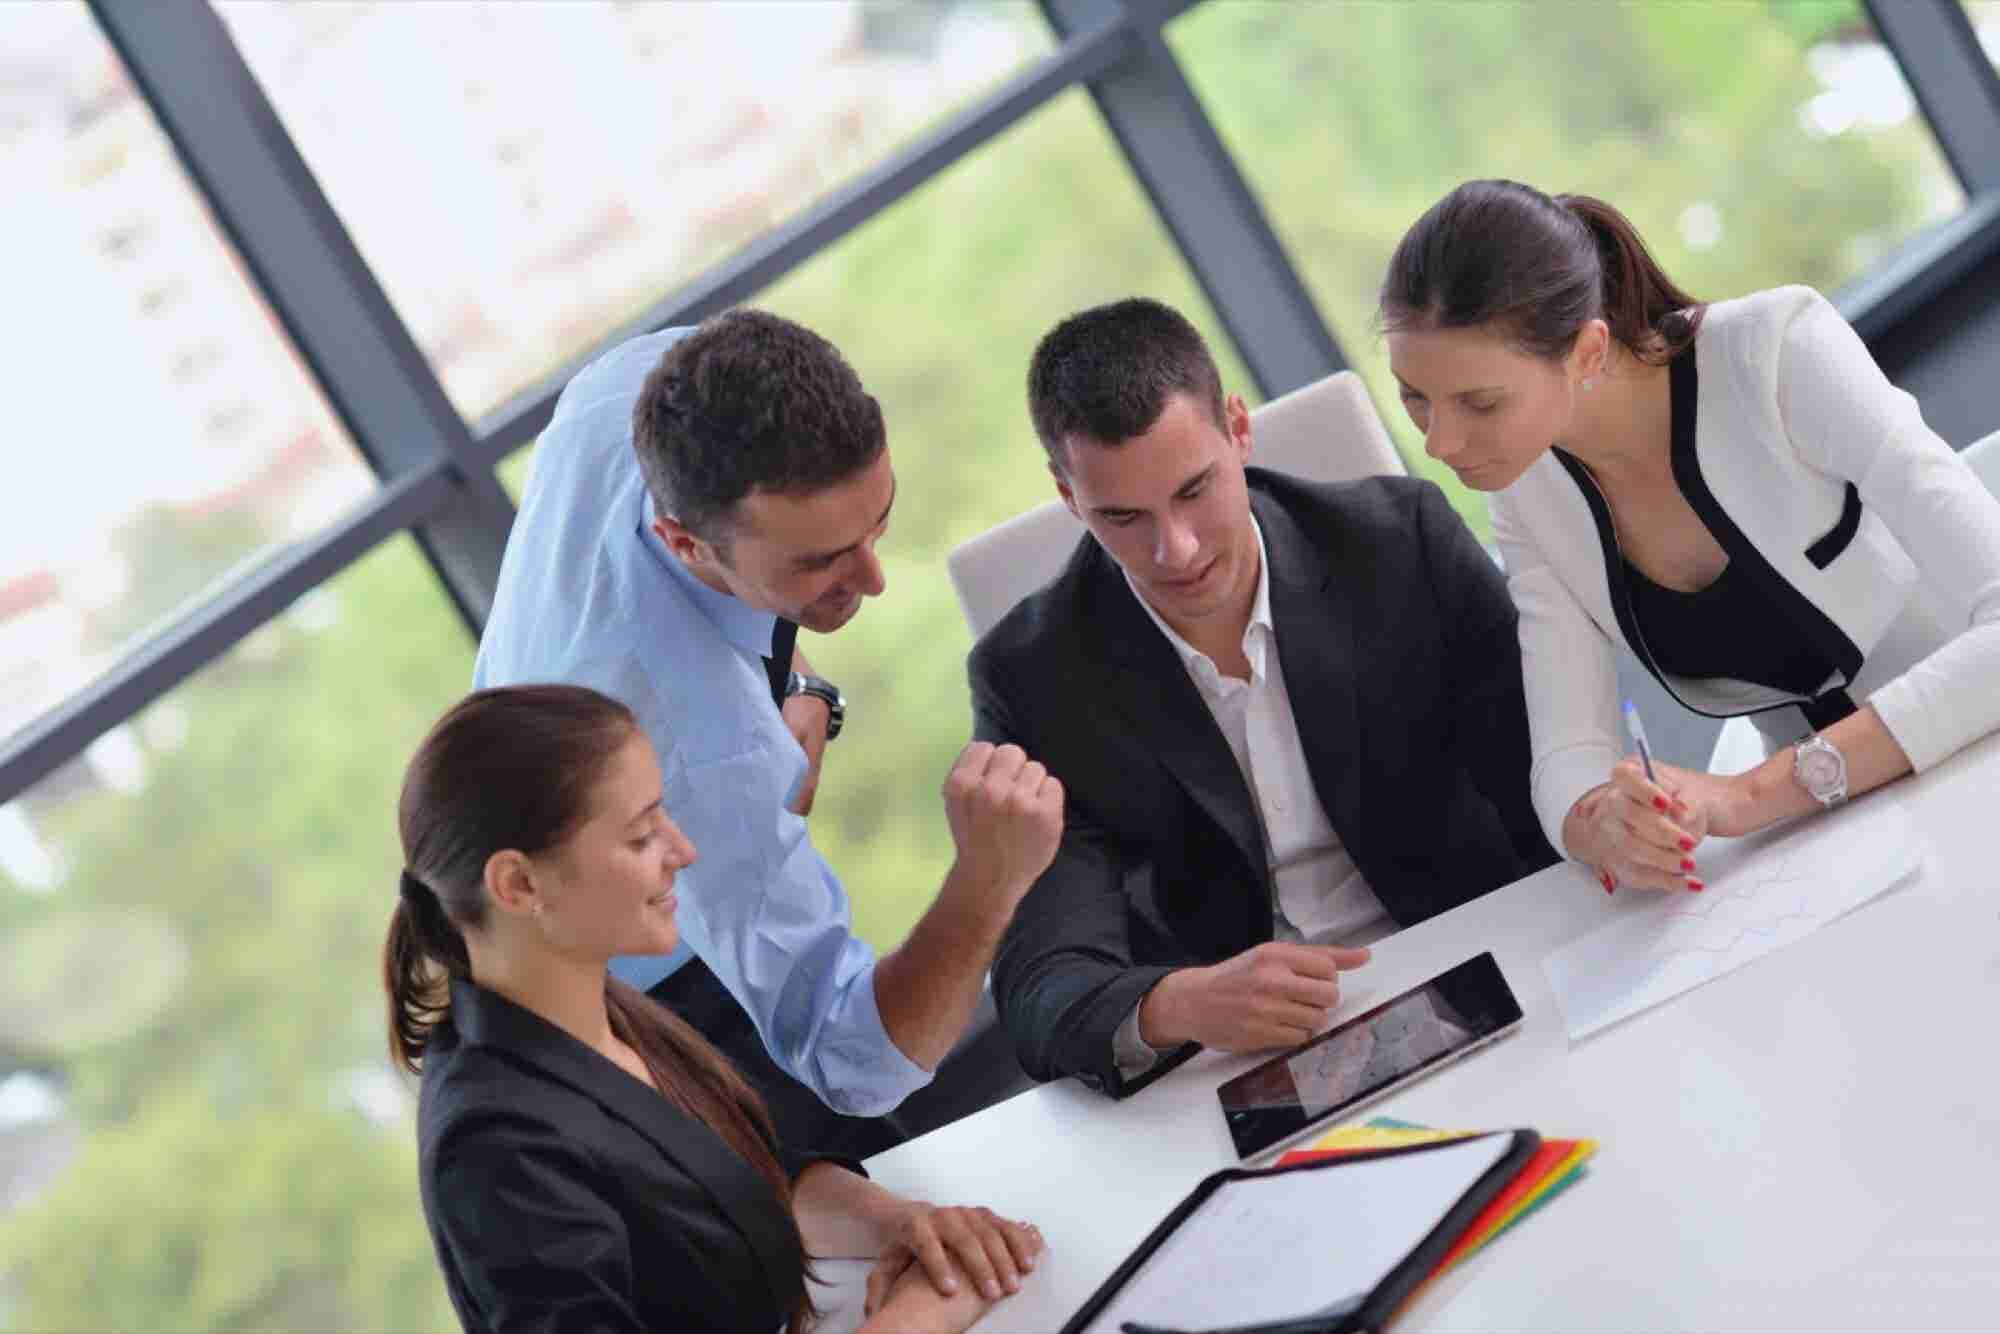 What's The Best Strategy For Getting The Best Out Of Your Employees?